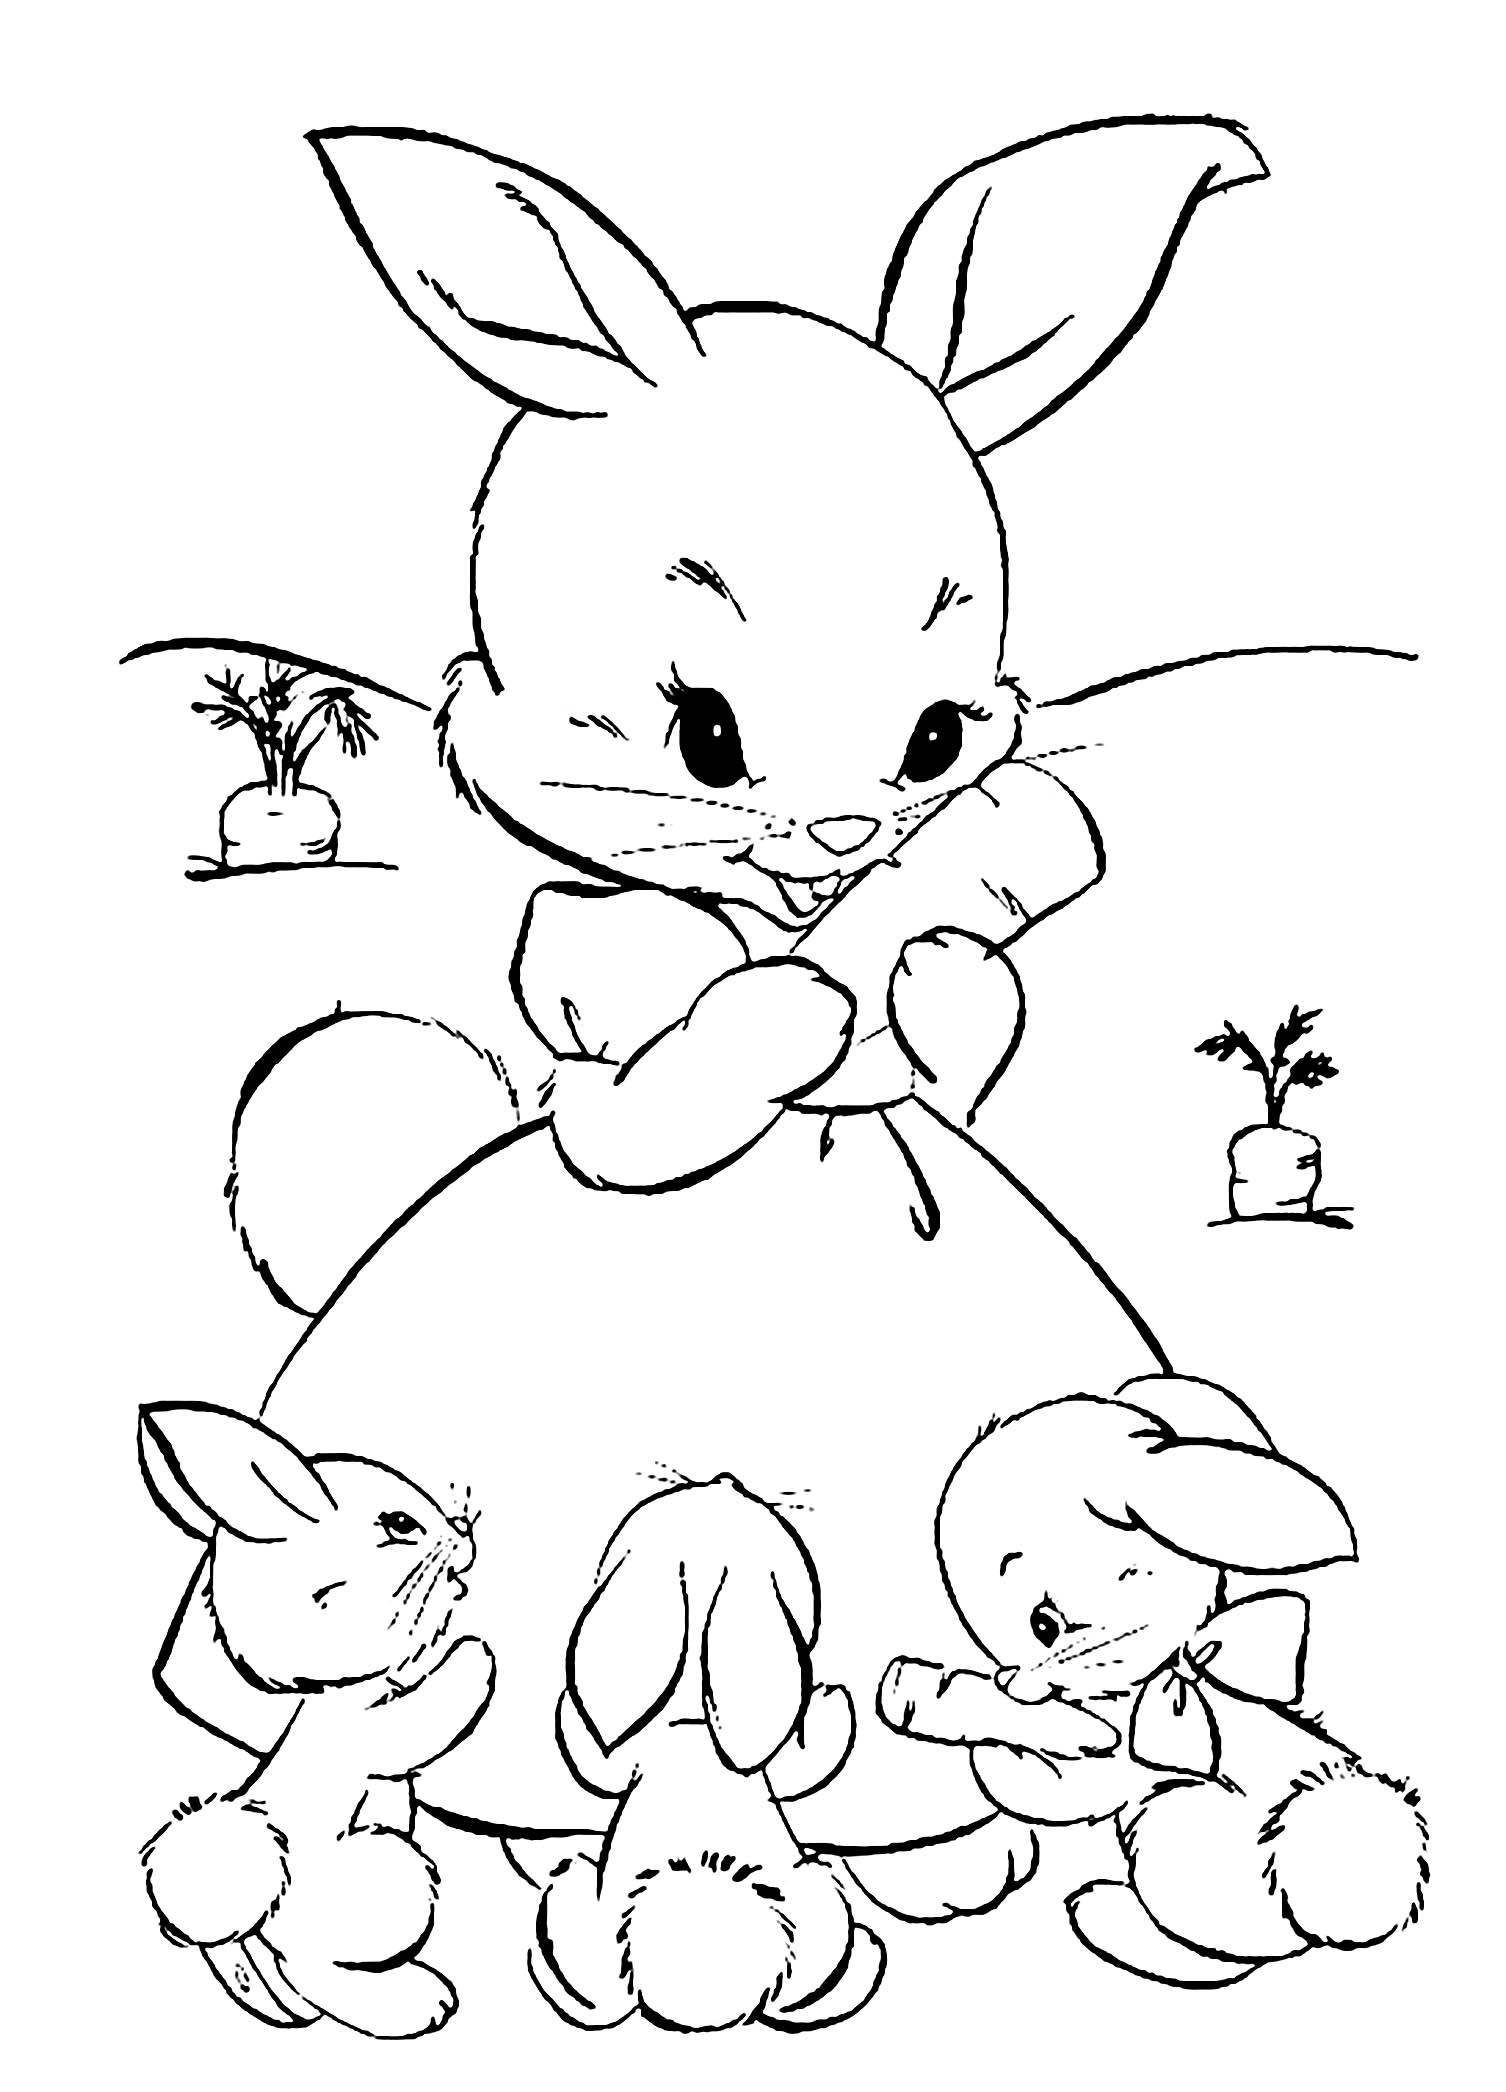 coloring pages of bunny rabbits rabbit free to color for children rabbit kids coloring pages rabbits coloring pages of bunny